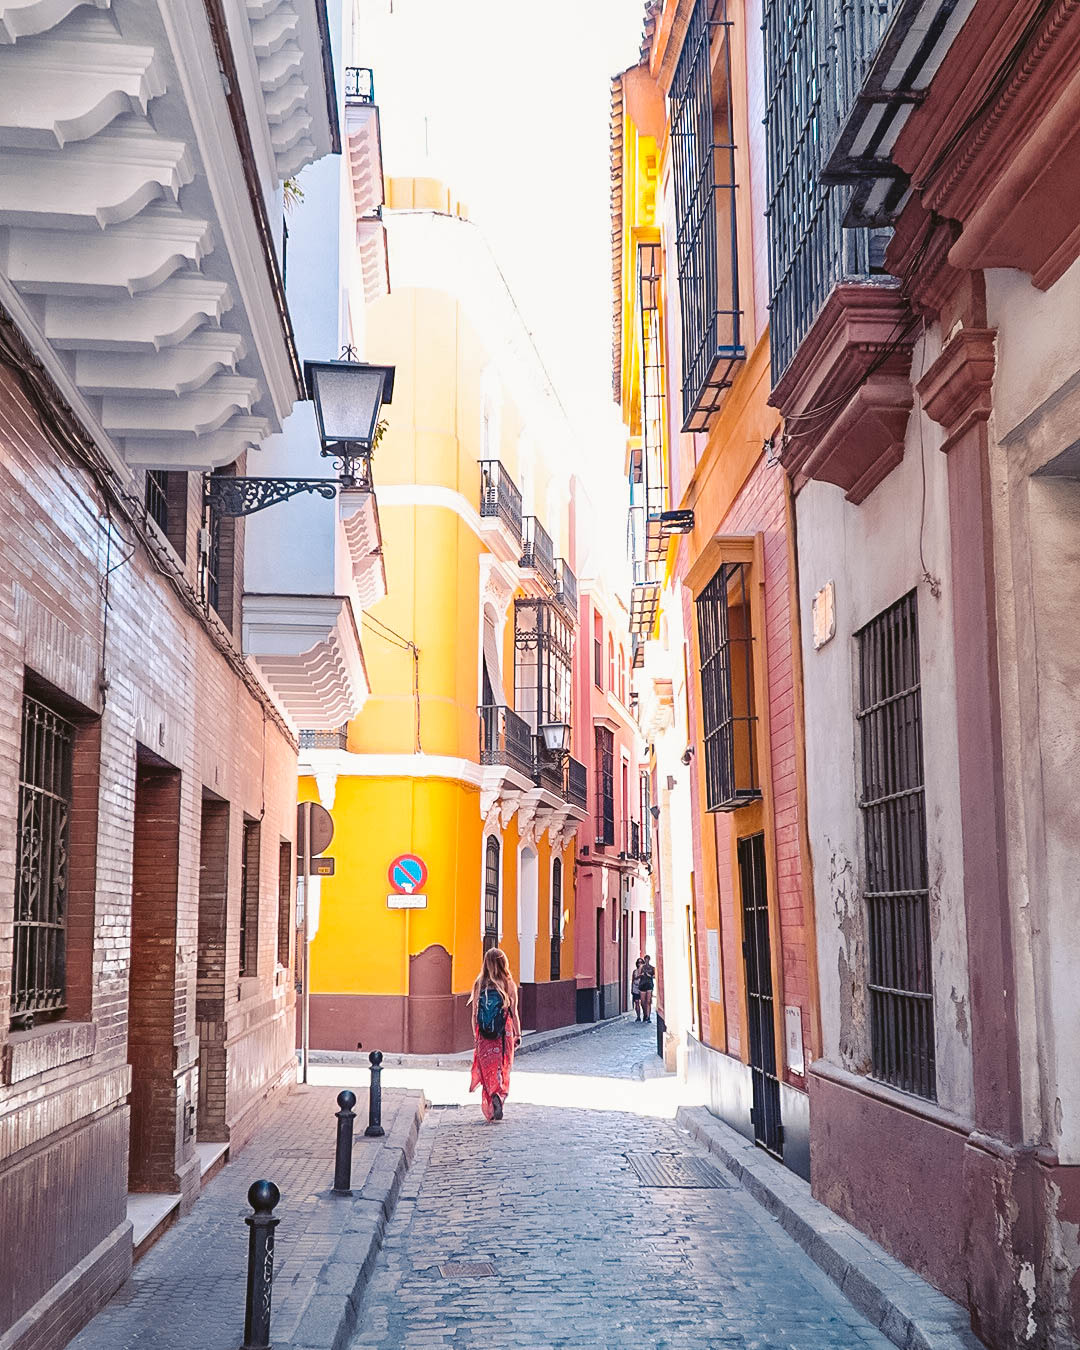 Exploring the Barrio Santa Cruz is one of the best things to do in Seville, Spain. Use this Seville city guide and discover what to do in Seville Spain. #seville #sevilleguide #sevilletravelguide #sevilleeurope #sevilletips #sevillefood #sevilletapas